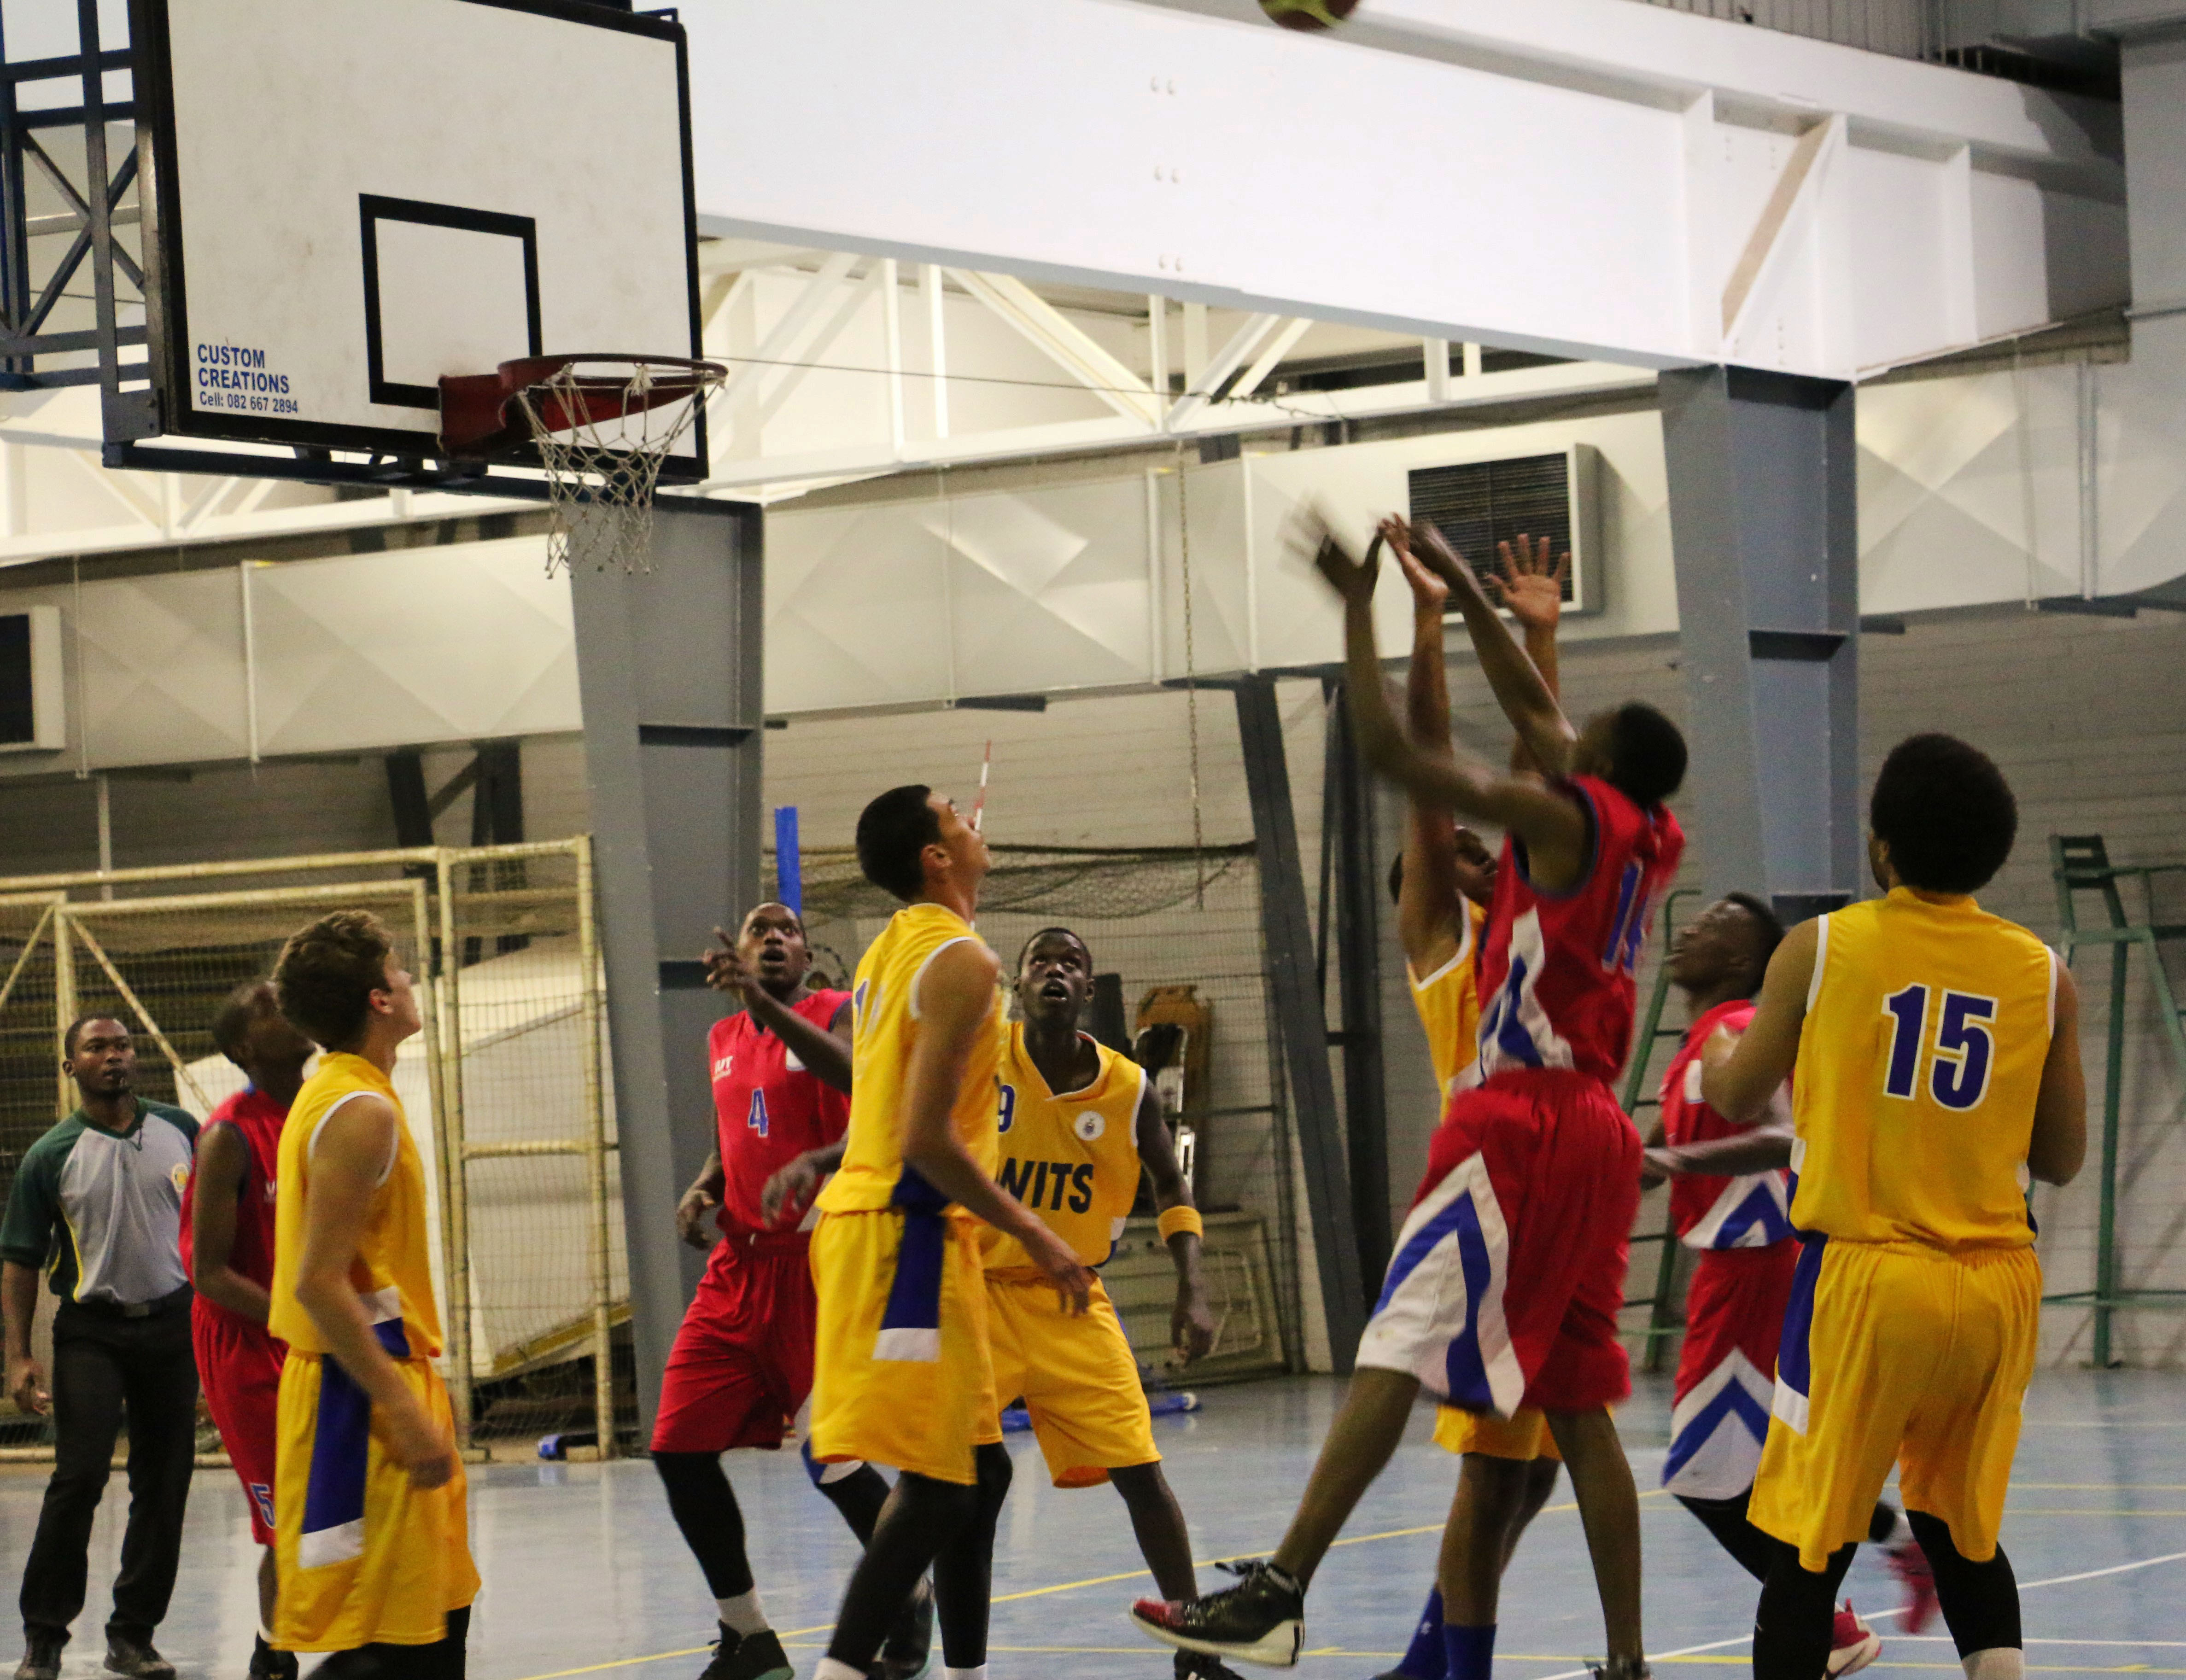 Wits basketball bounces its way to the top